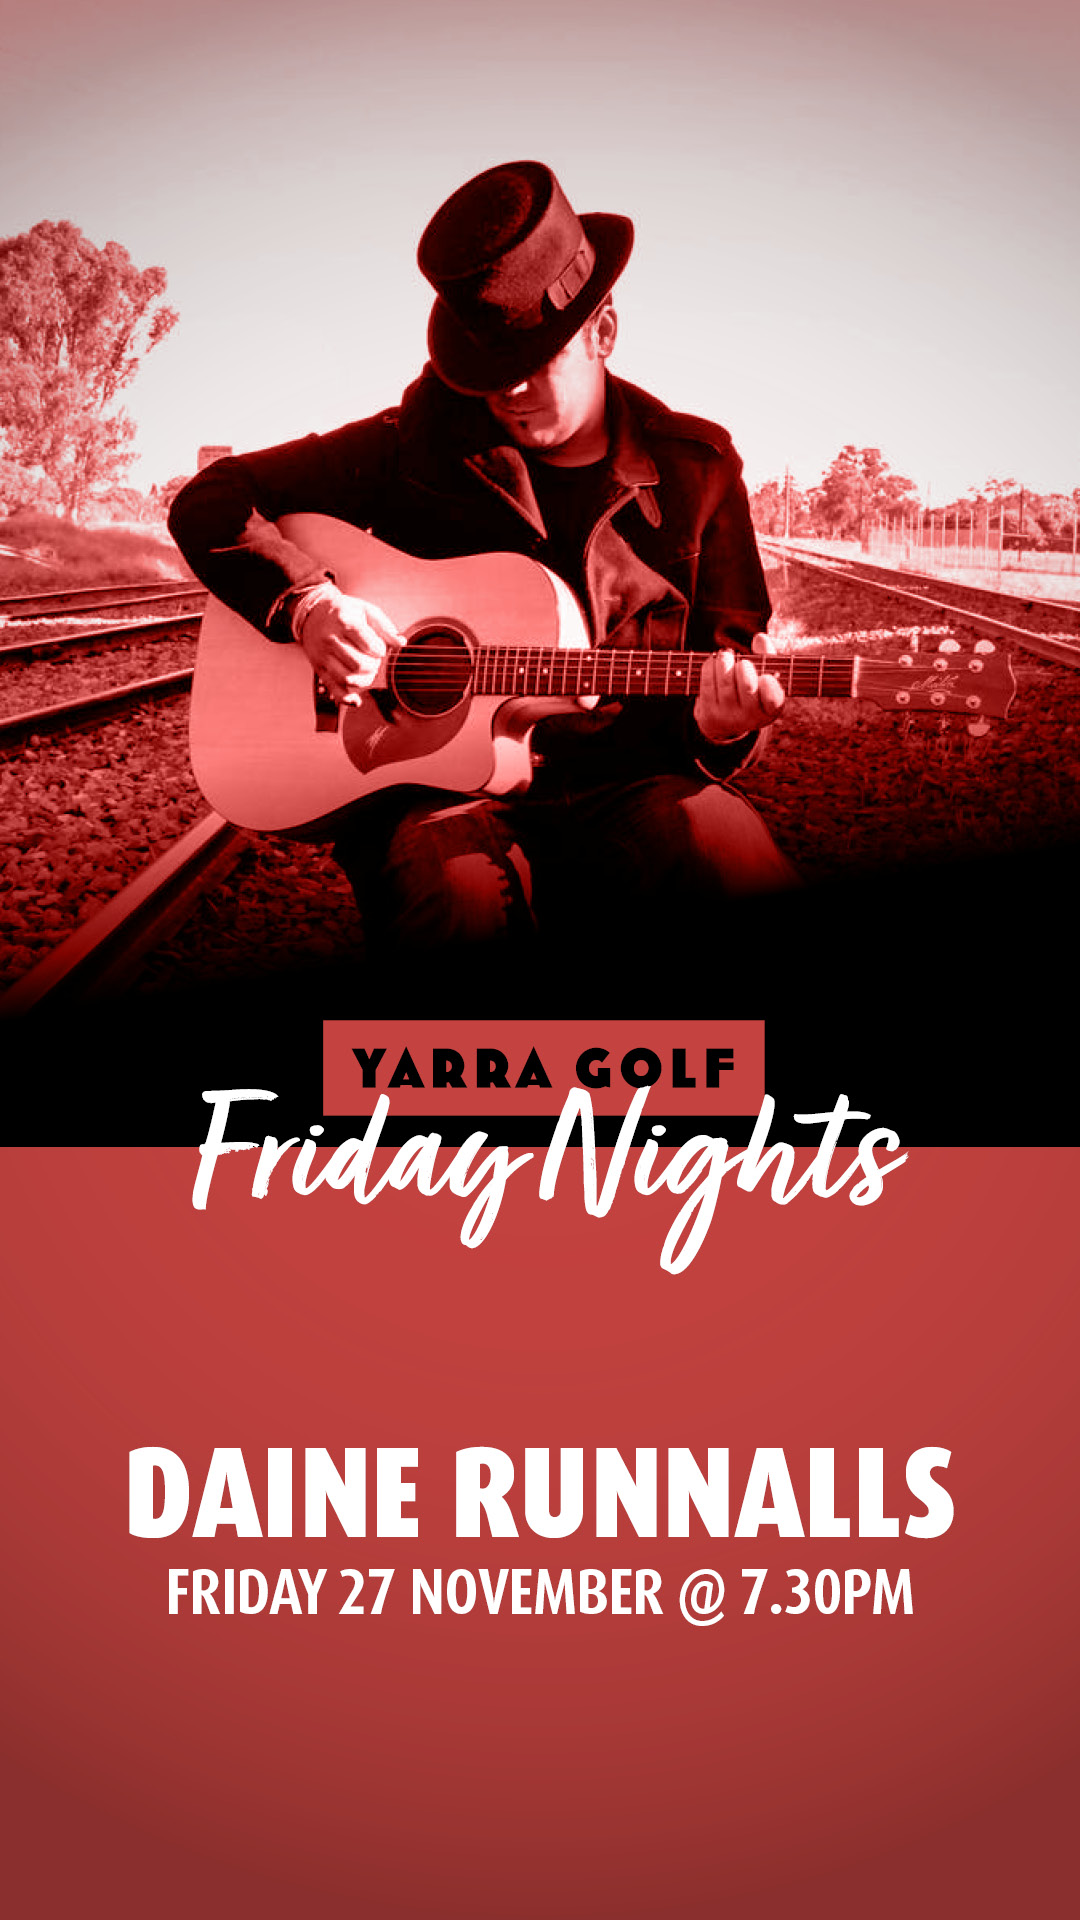 Daine Runnalls: Yarra Golf Friday Nights